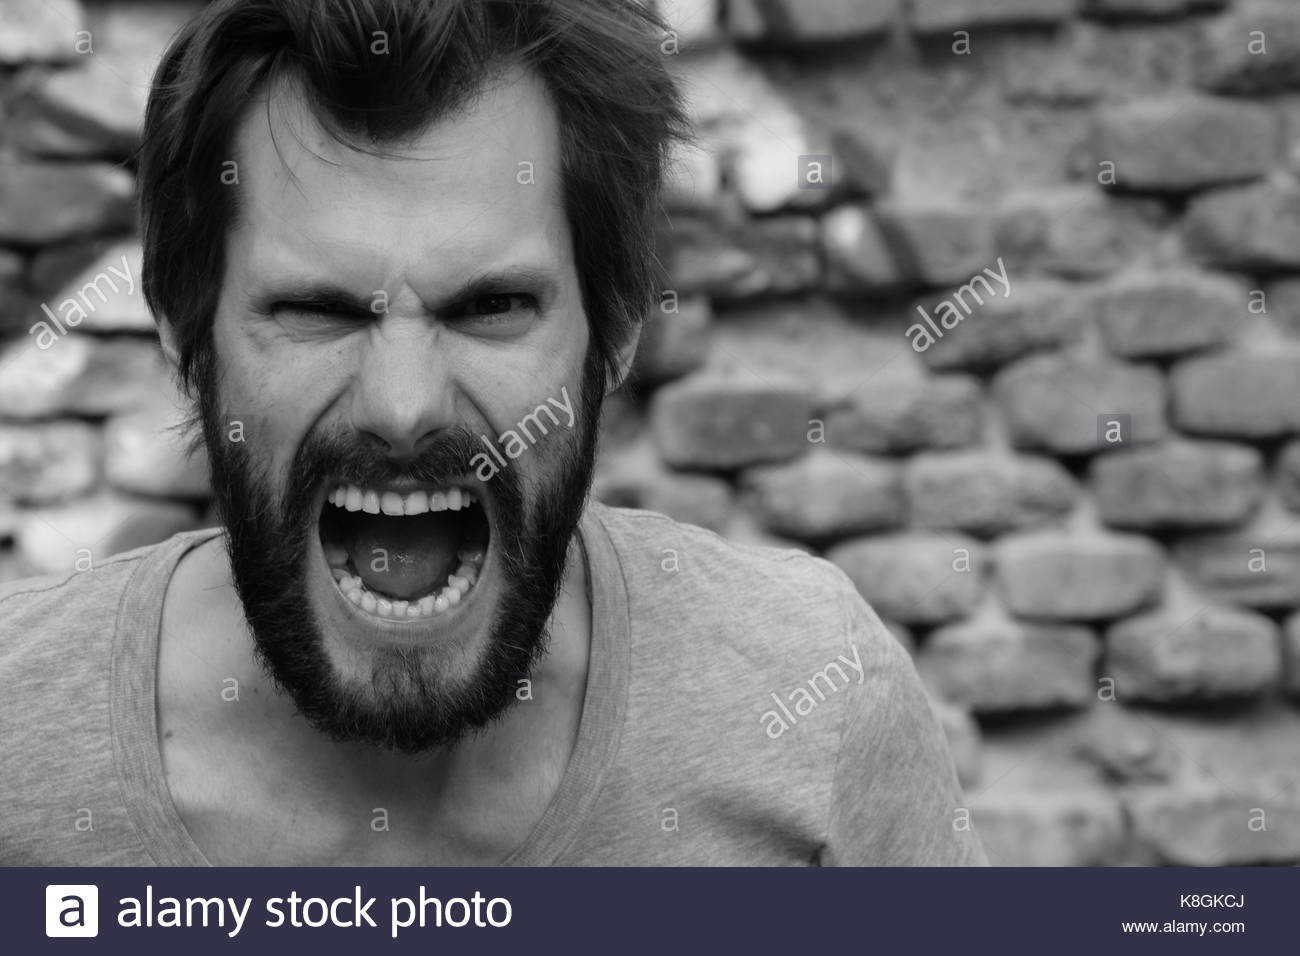 Rage and Anger - Stock Image